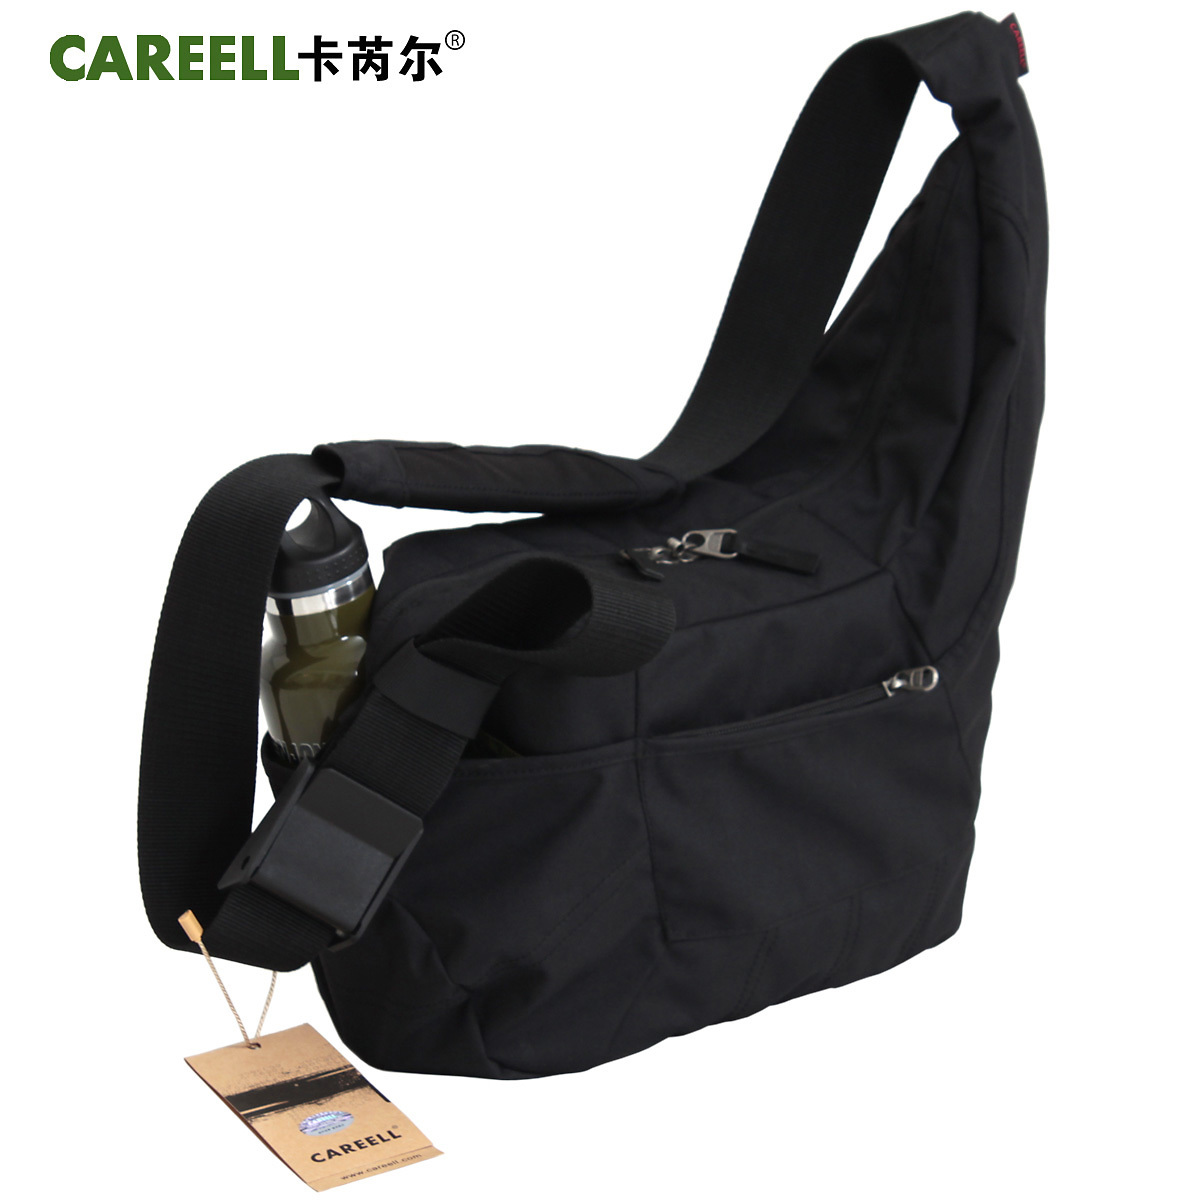 CAREELL C2028 High Quality Backpack Trolley bag  One Shoulder Backpack Inclined Across Shoulders  For Camera Video Photo Bag-in Camera/Video Bags from Consumer Electronics    3